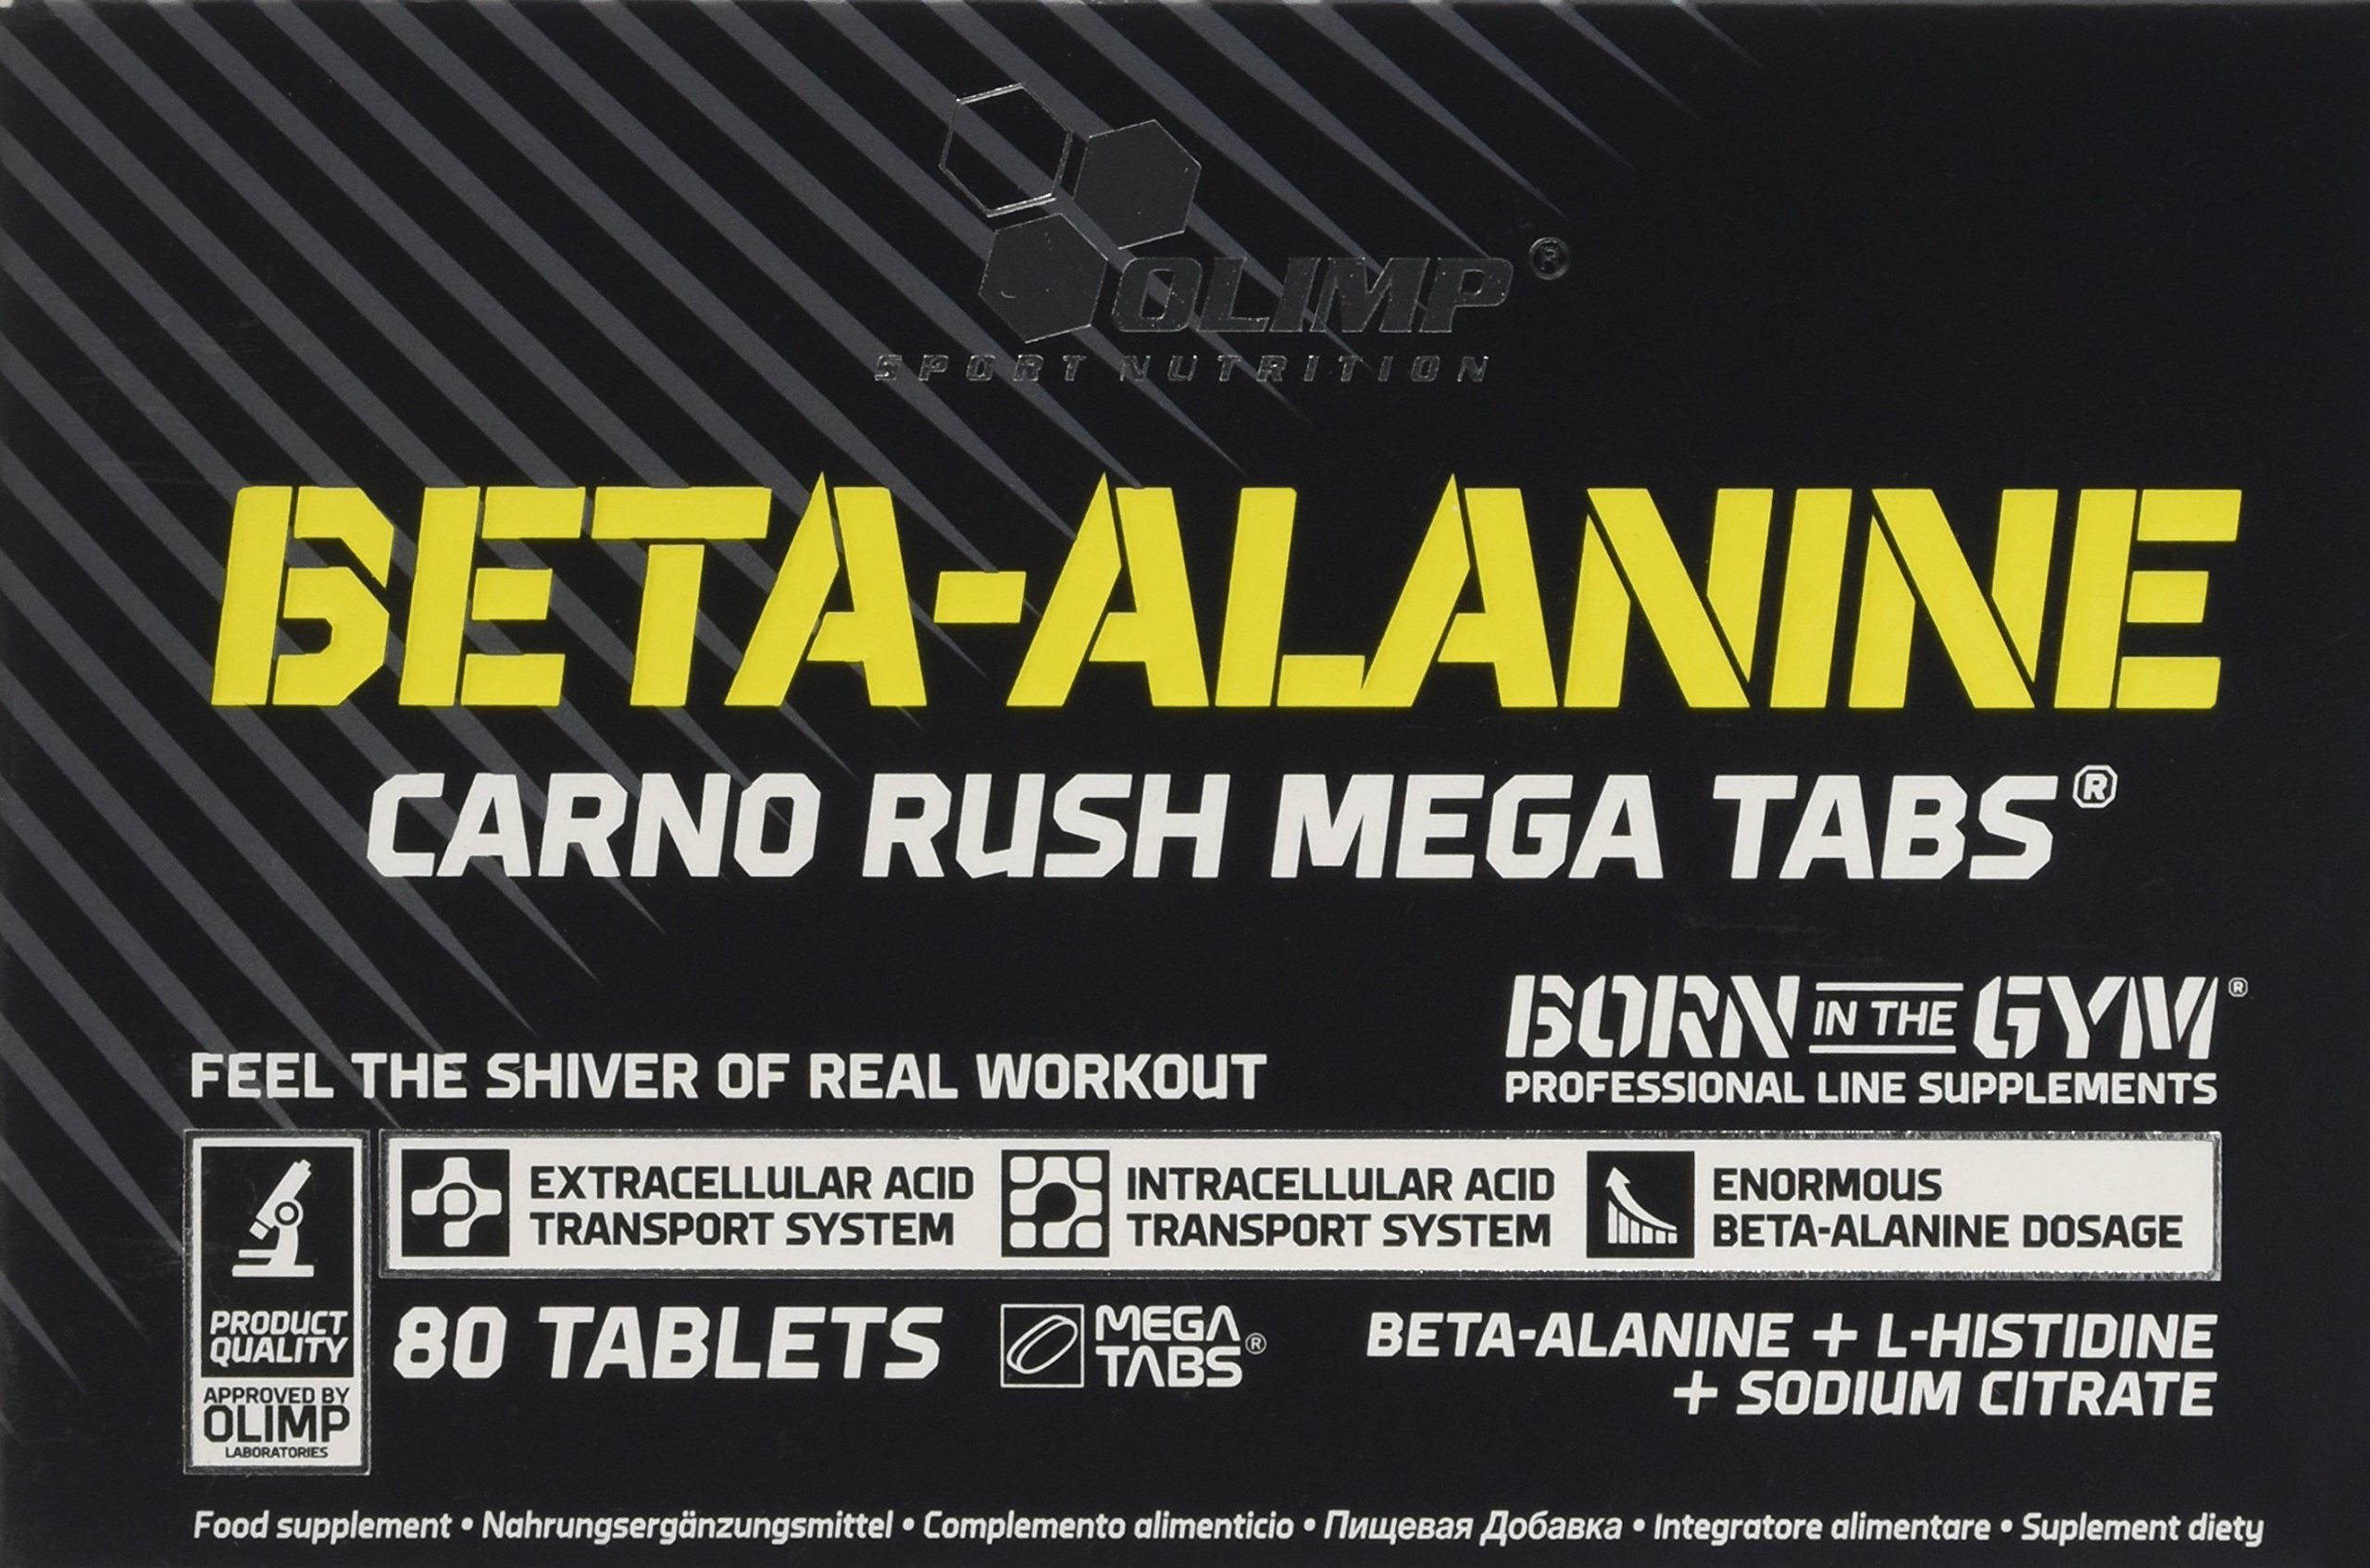 911YtLA9pRL - Olimp Labs Beta-Alanine Capsules, Carno Rush, Pack of 80 Mega Tablets, BETA-Alanine CARNO Rush